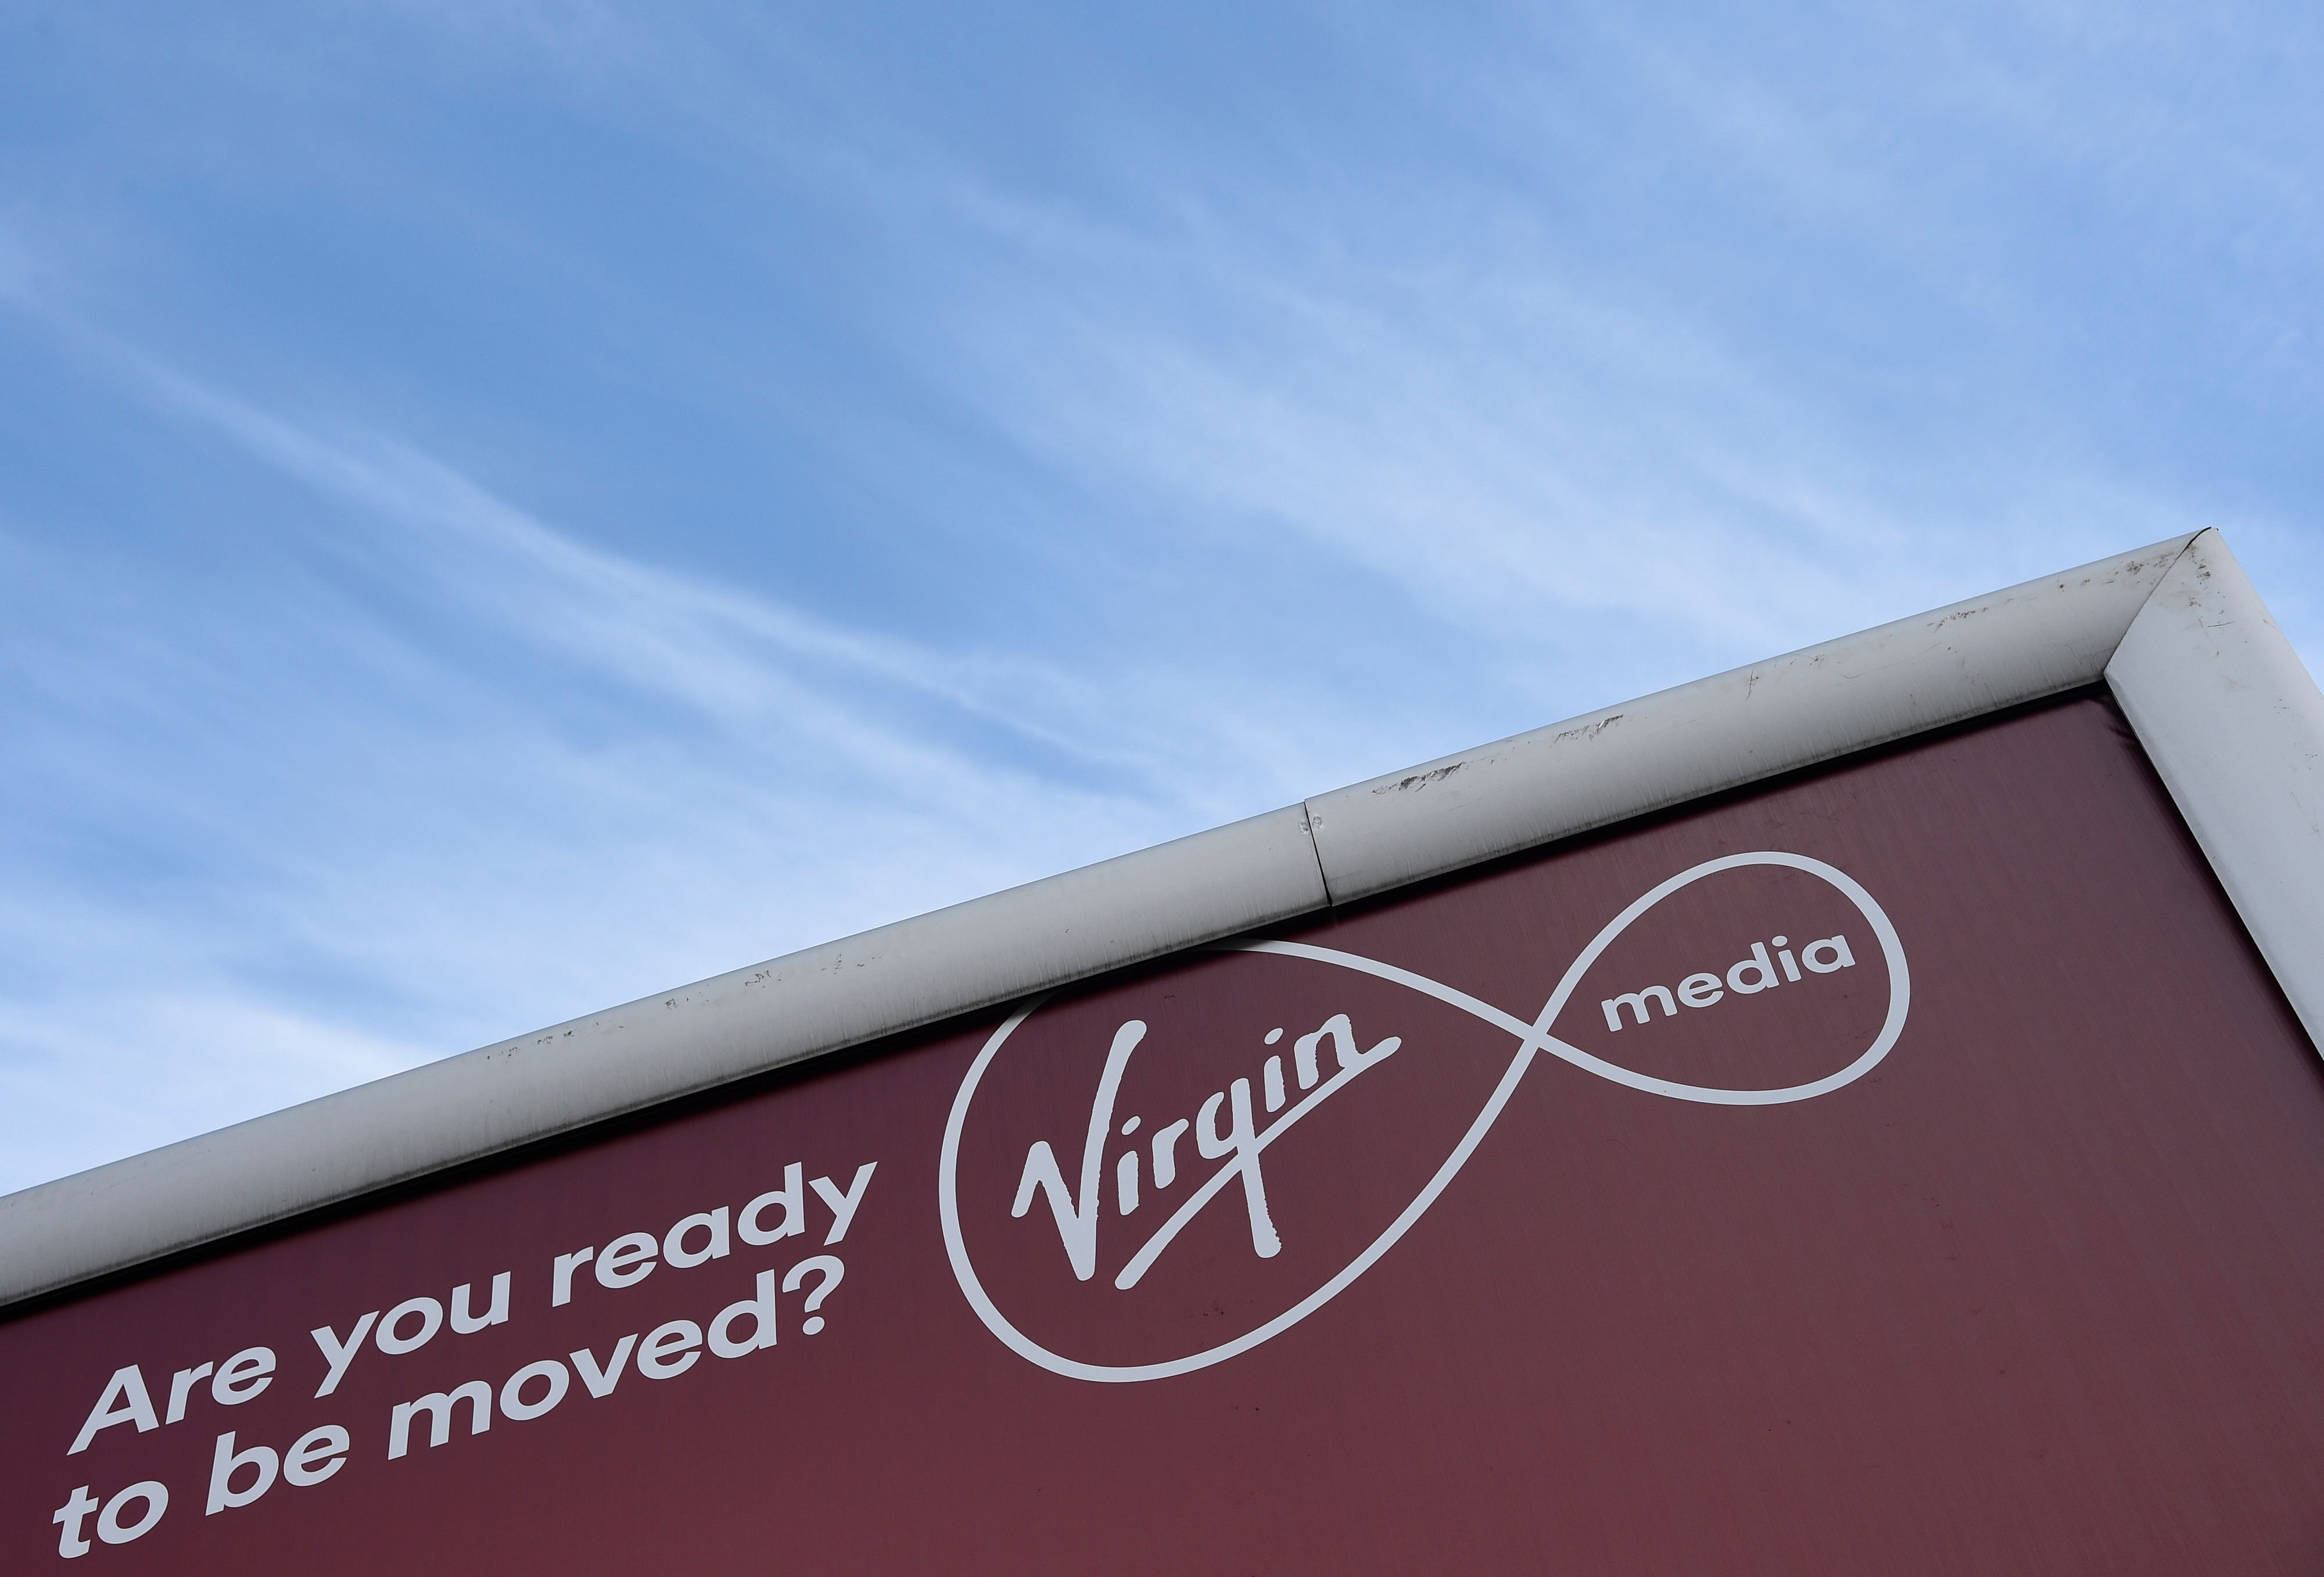 EE and Virgin Media fined £13.3m for overcharging 500,000 customers